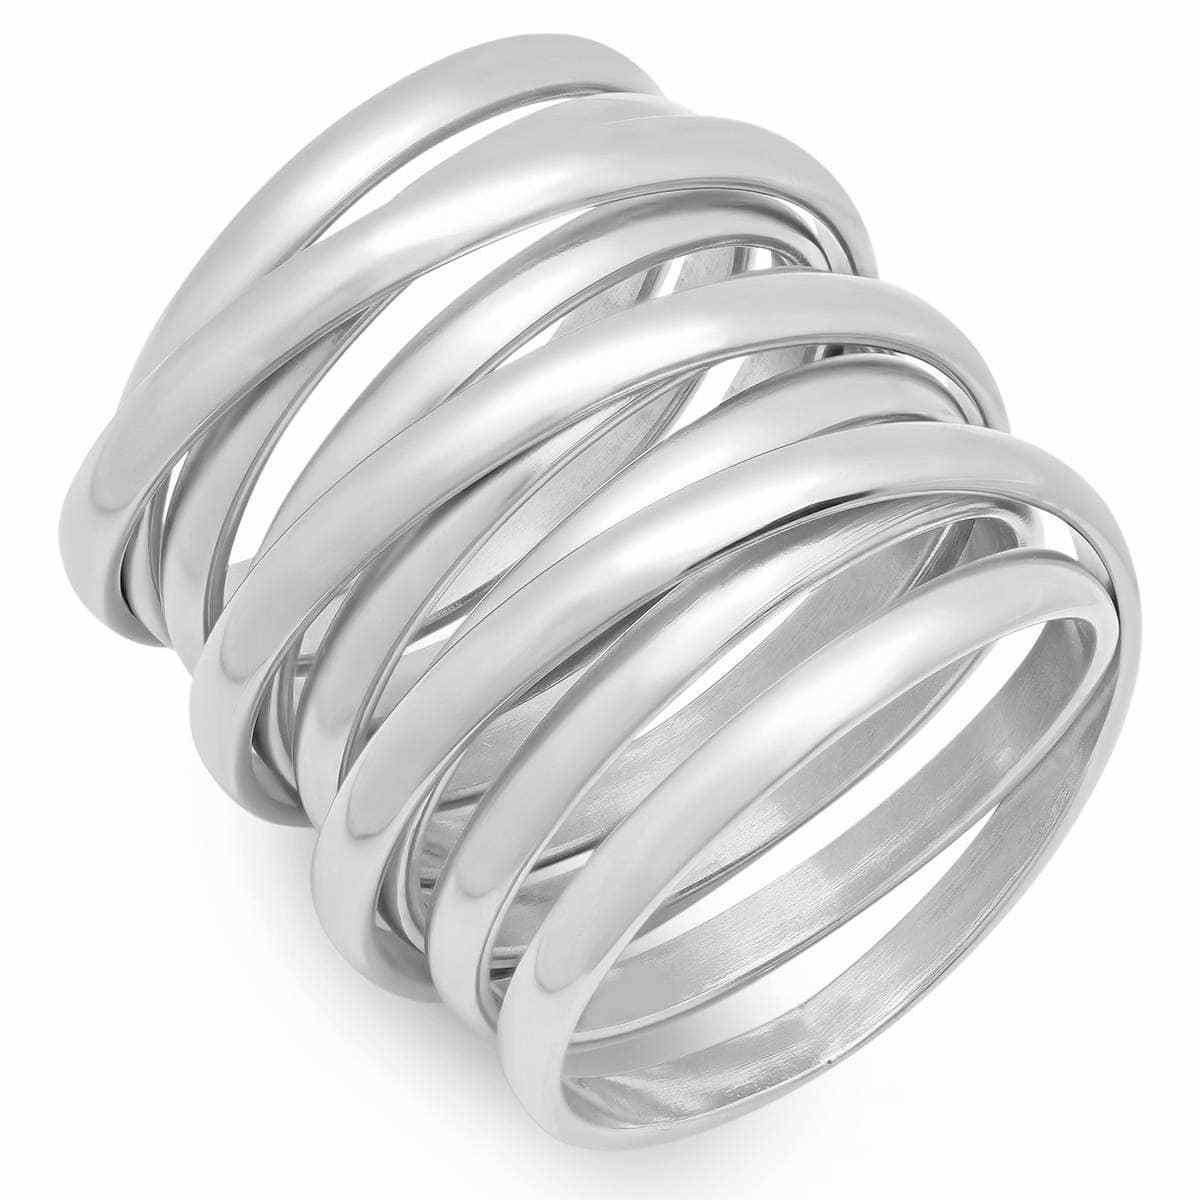 Piatella Ladies Stainless Steel Multiwrap Ring Size 7 5ad5624c2a00e45c1b7cb1ae